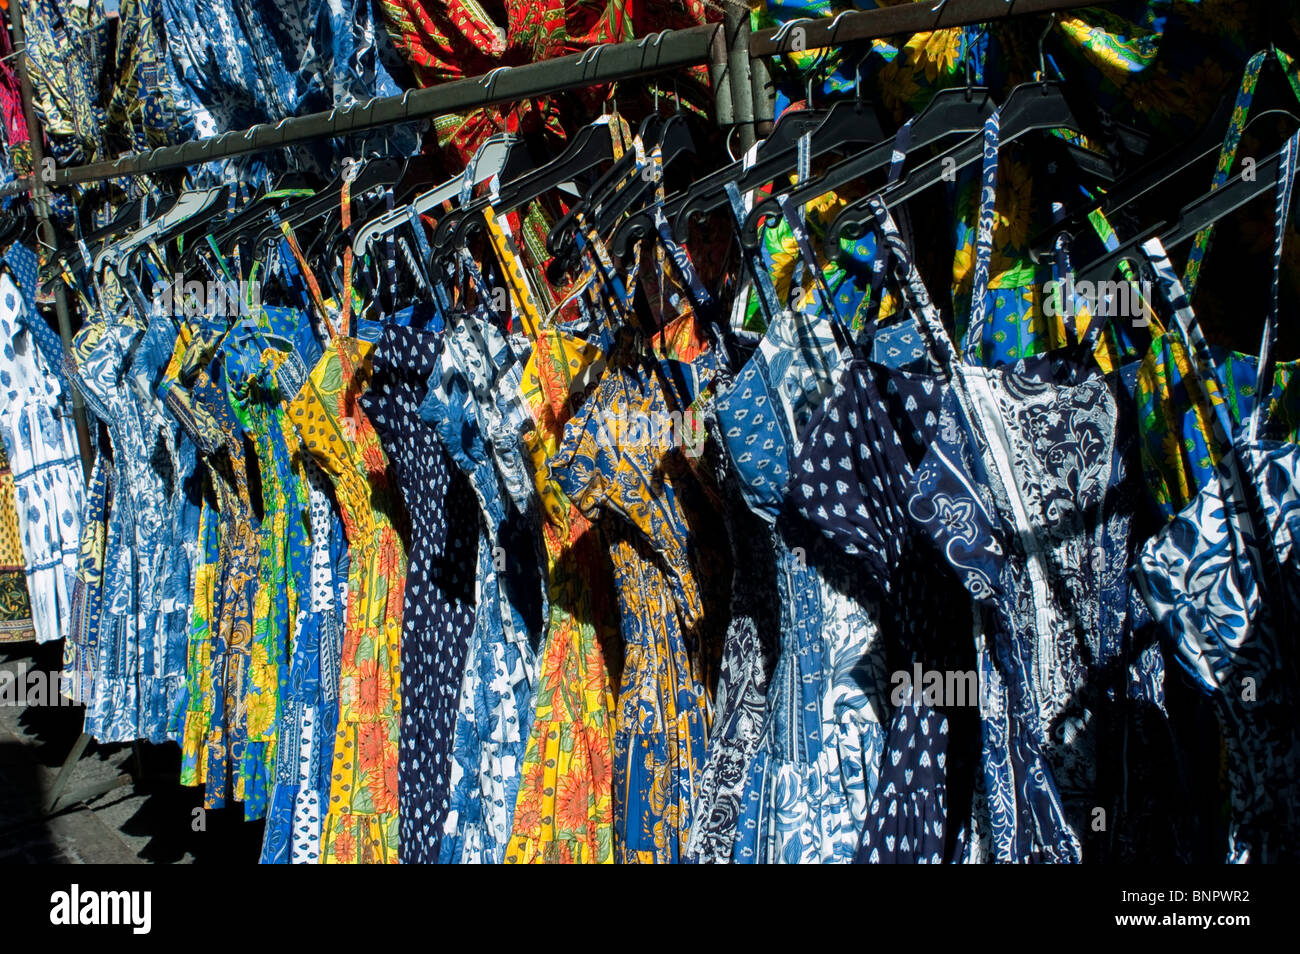 Arles, France, Summer Dresses on Display on Racks on Street Shopping in Local Provincial Stores, Locally Made Clothing, - Stock Image